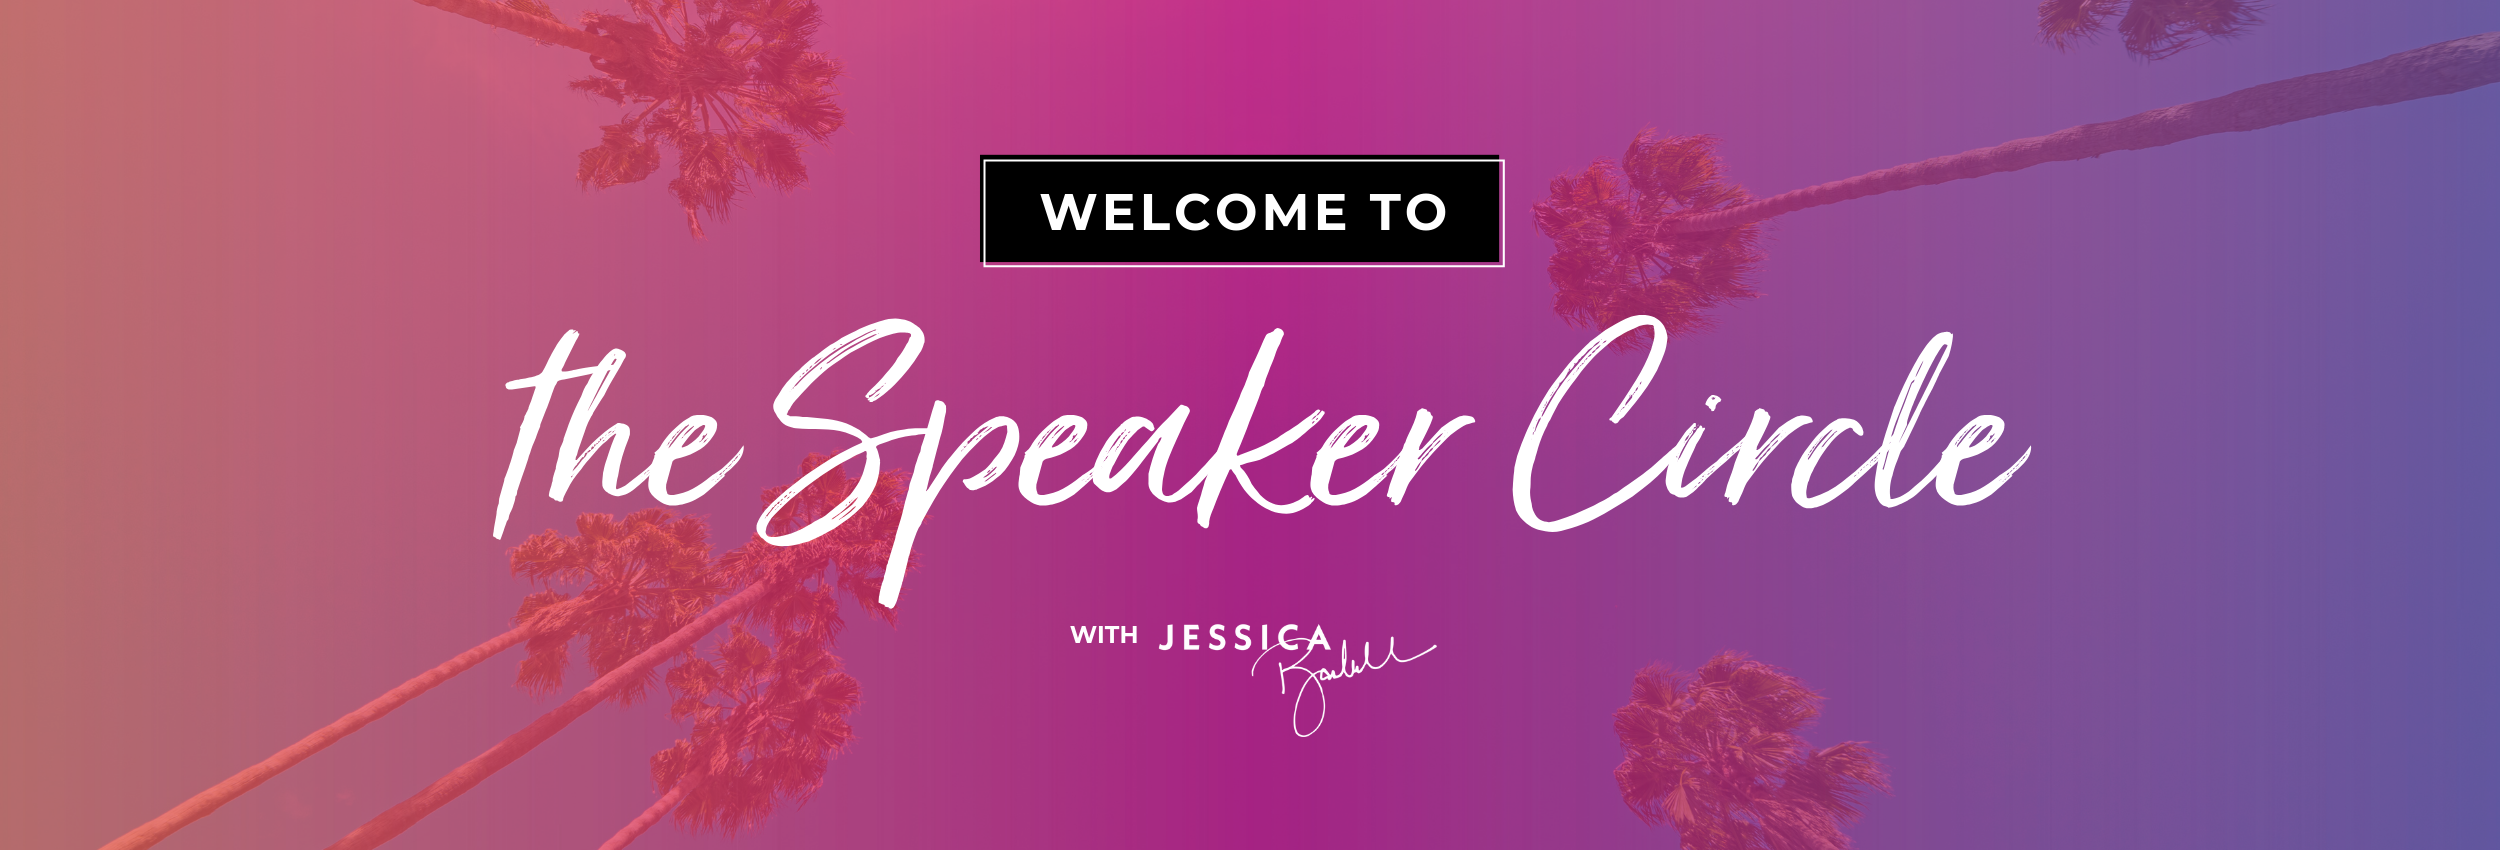 Speaker Circle - Welcome (2).png